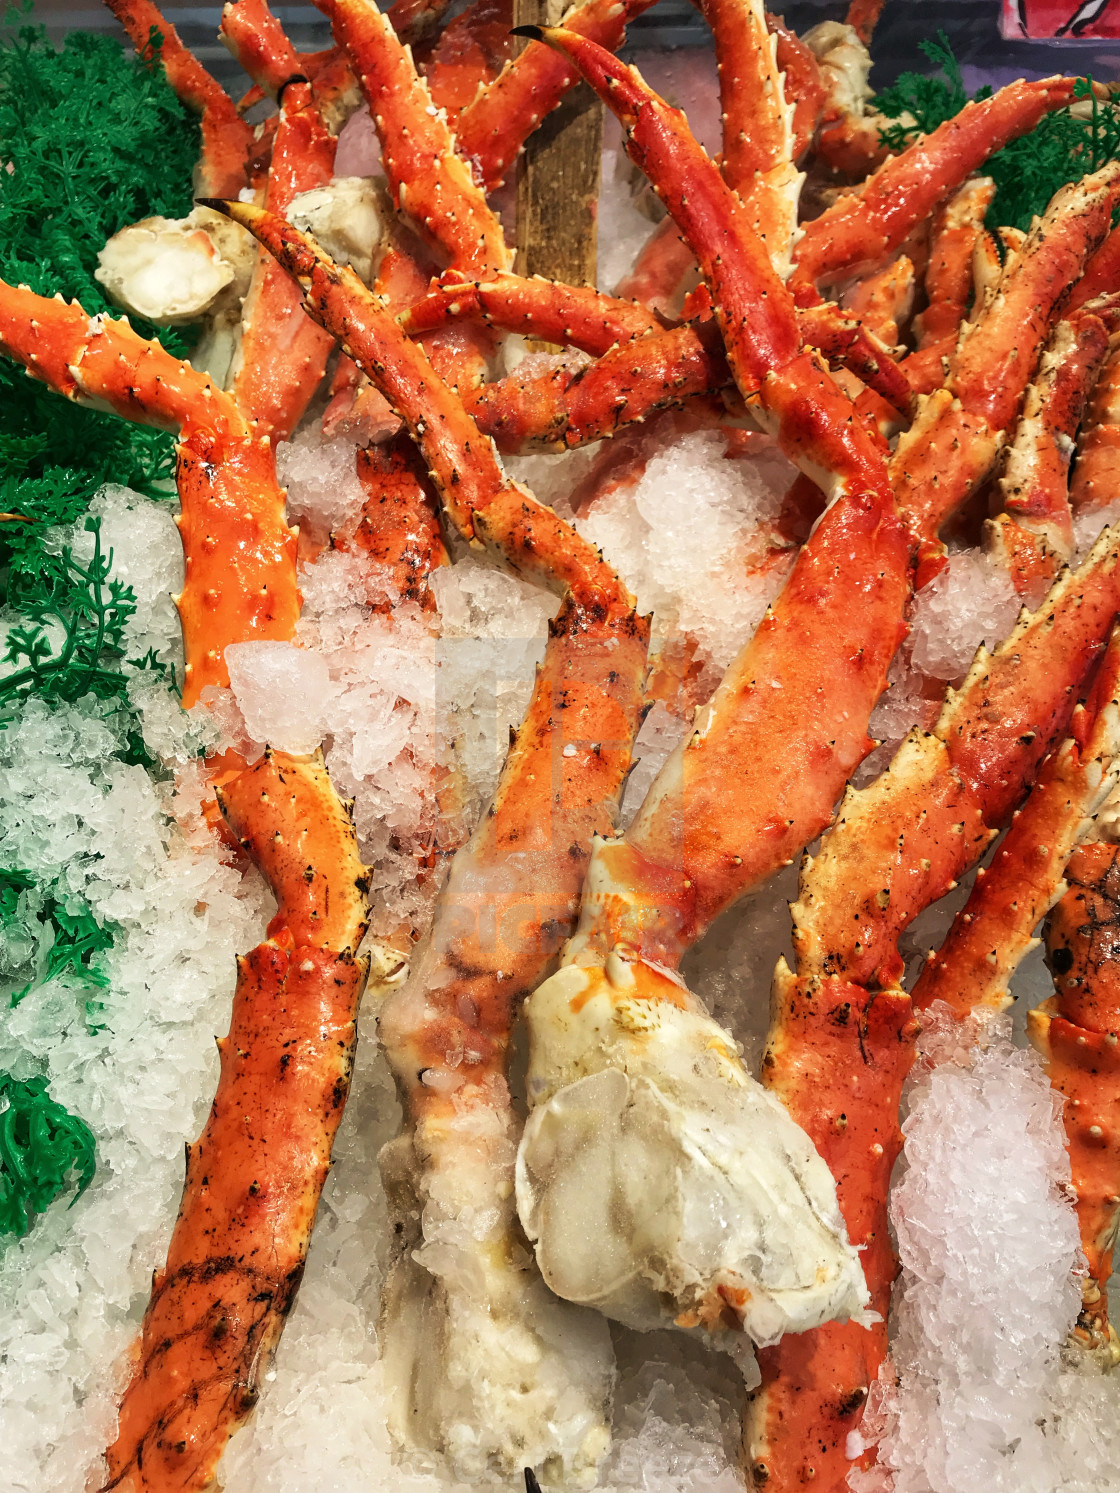 Close up of king crab legs on ice